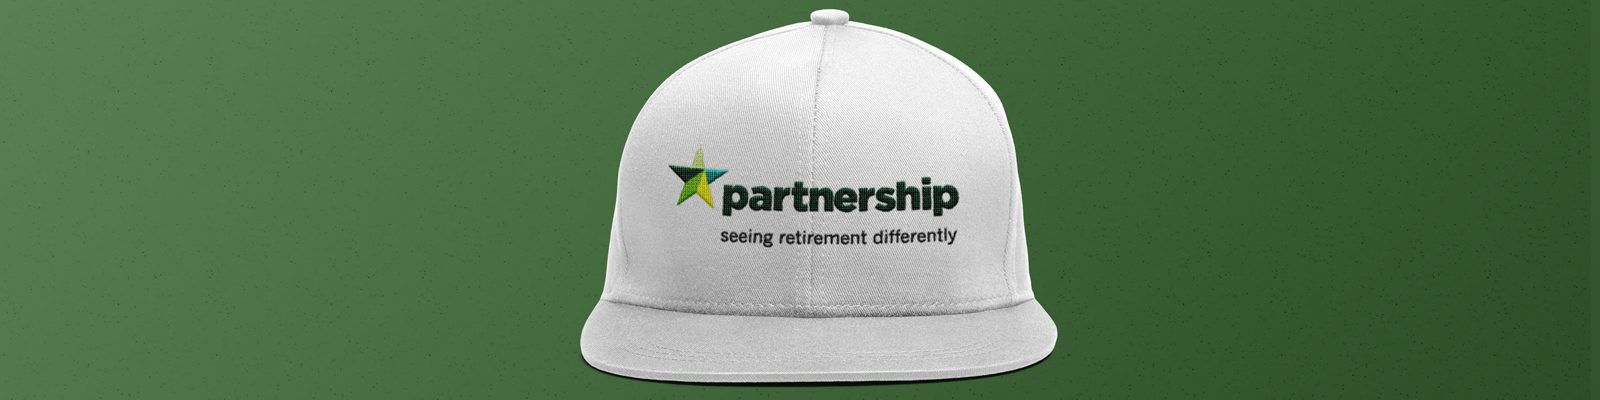 Personalised caps made Partnership stand out at their corporate event - Header Image